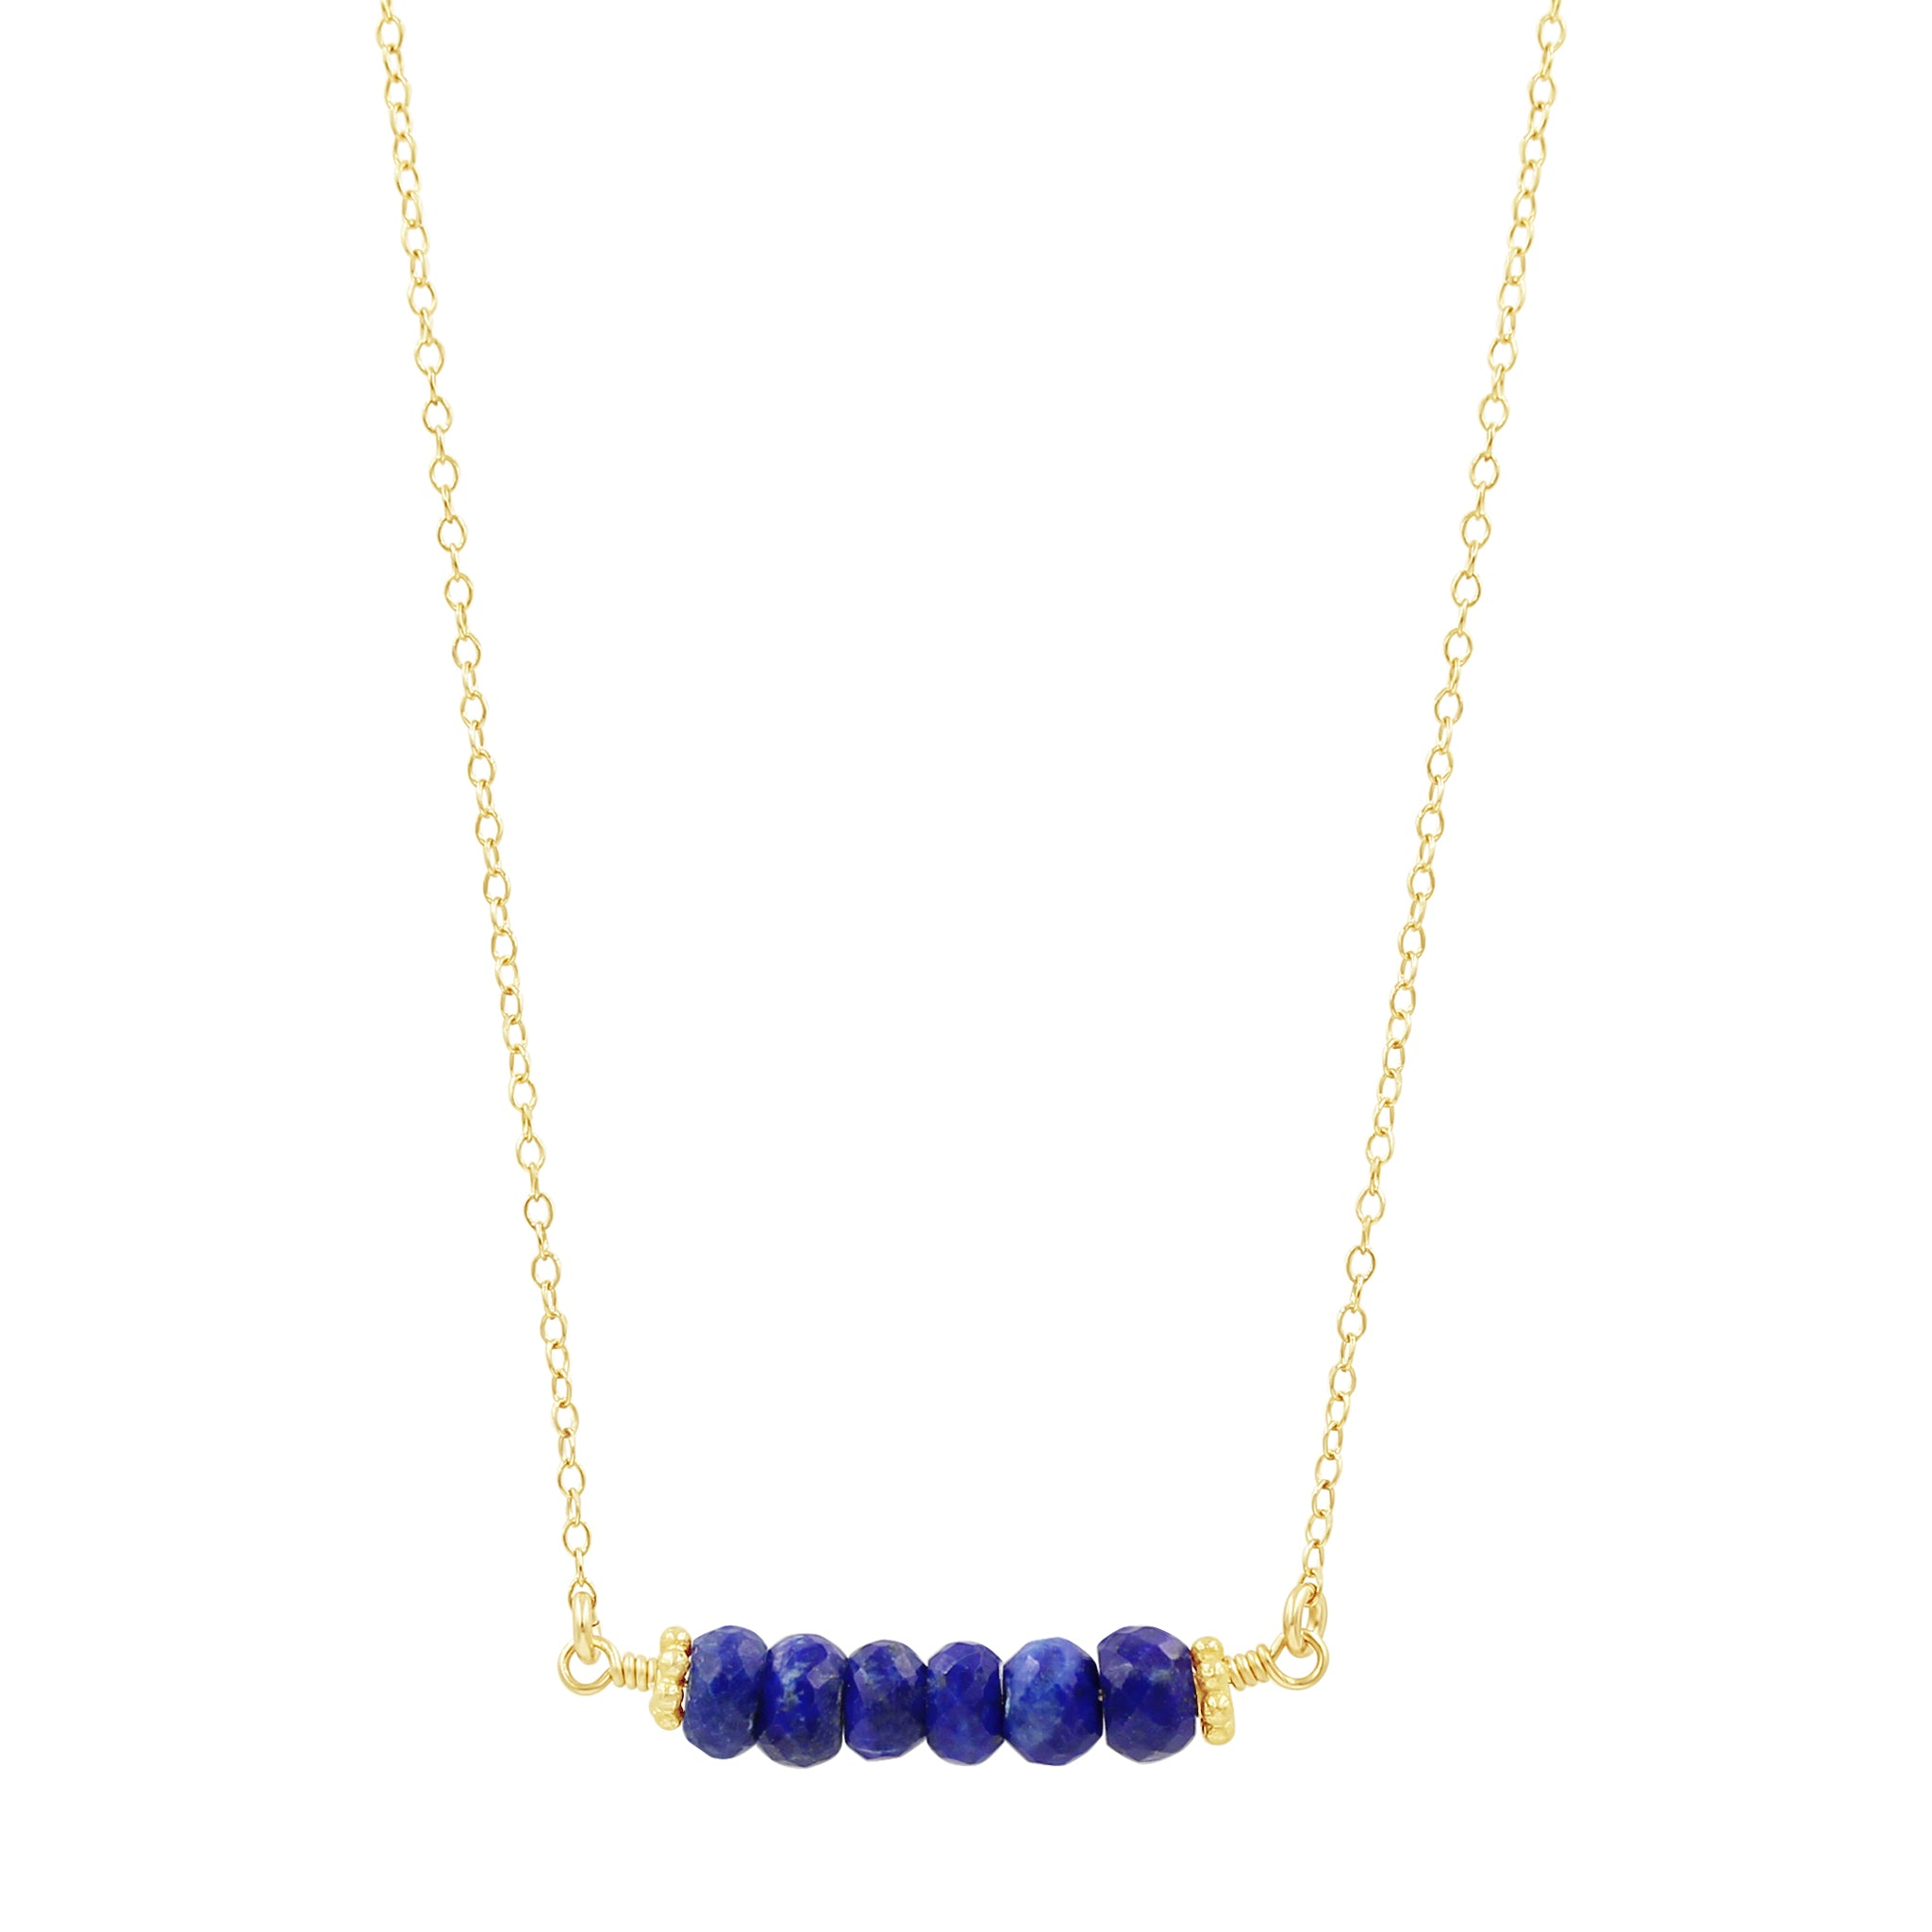 True Blue Lapis Necklace - Sati Gems Hawaii Healing Crystal Gemstone Jewelry